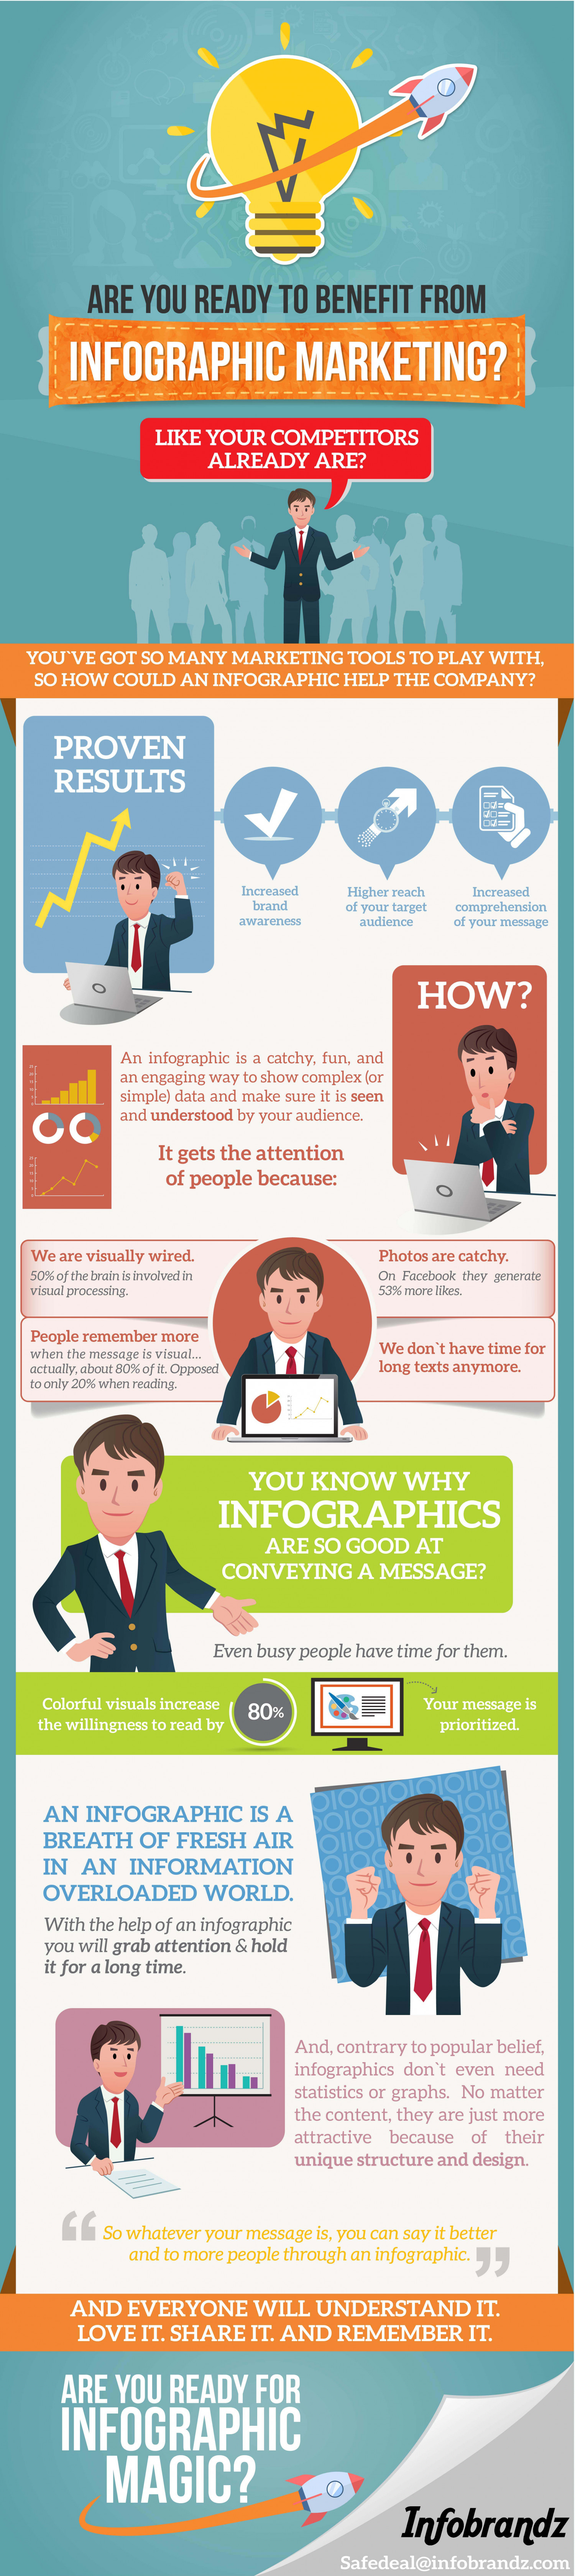 Why Infographic Marketing? Infographic